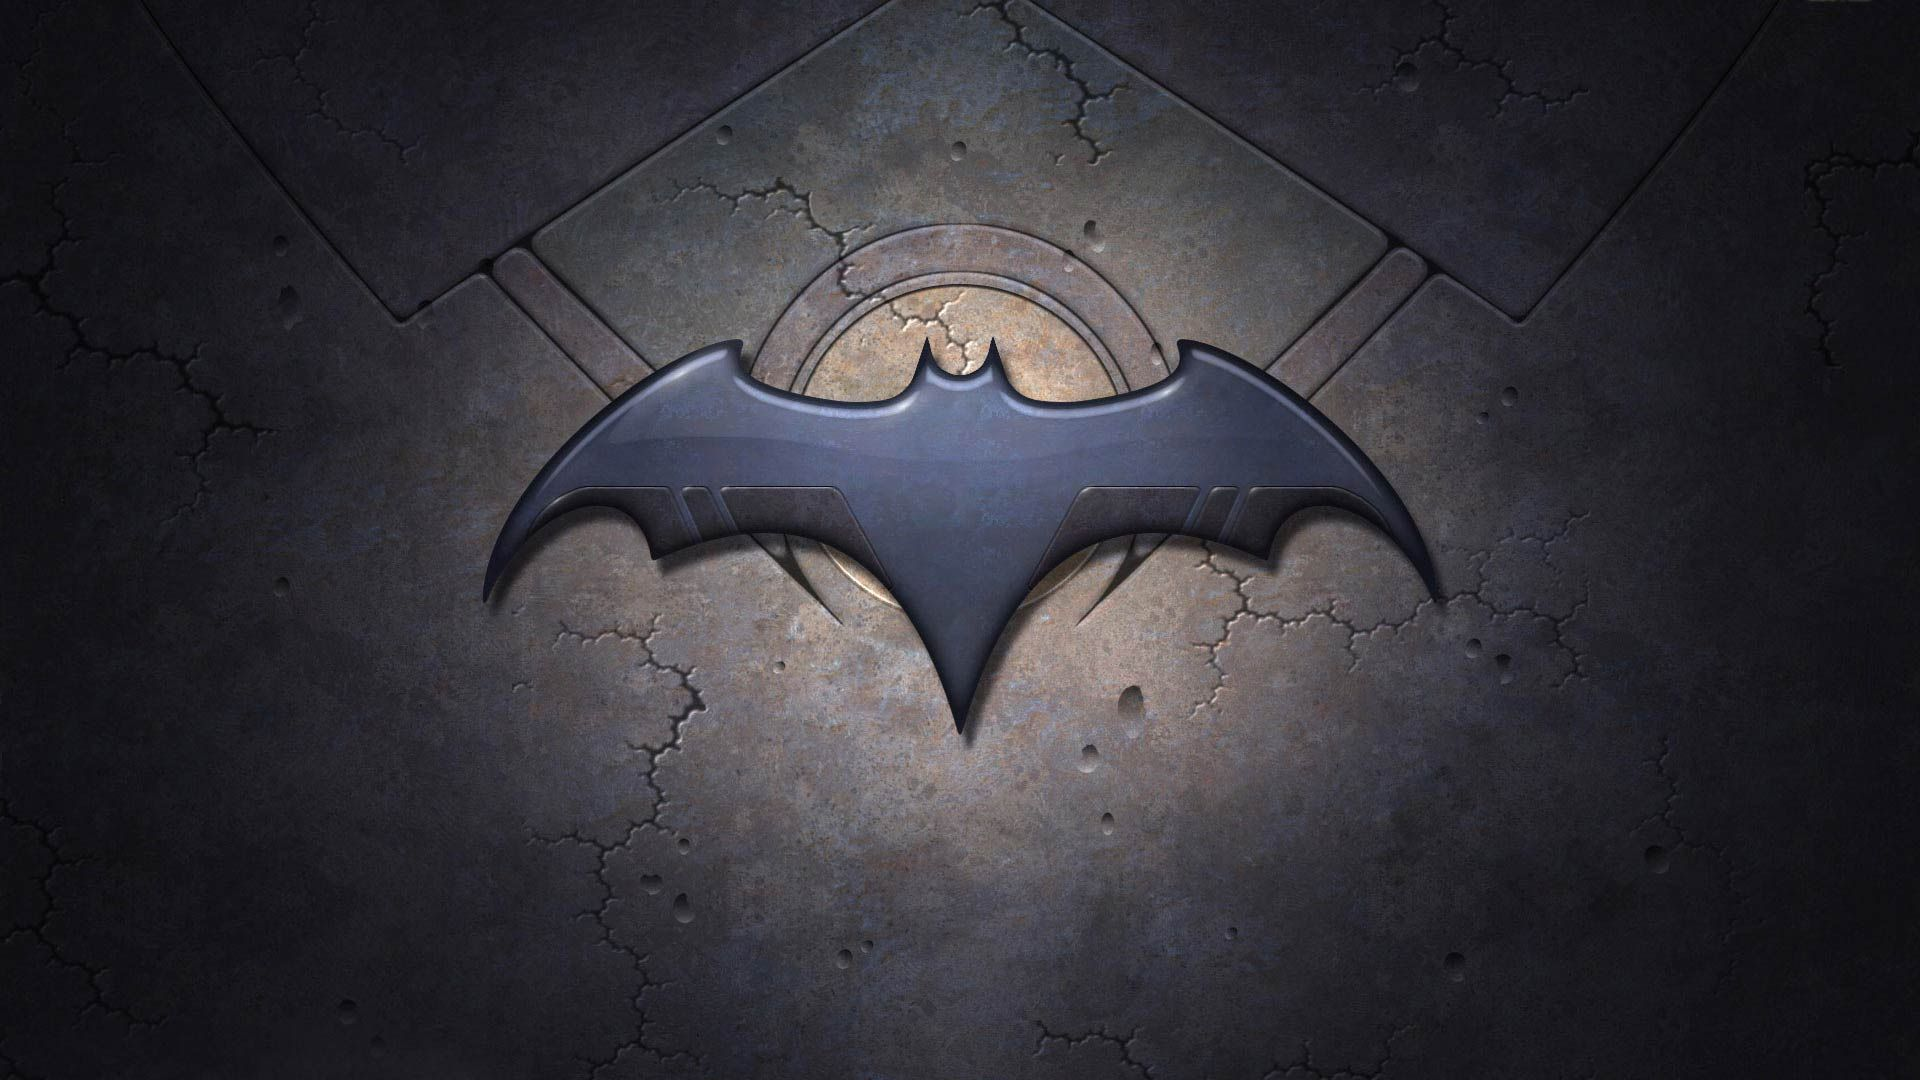 Batman Wallpaper Batman wallpaper, Batman, Batman logo